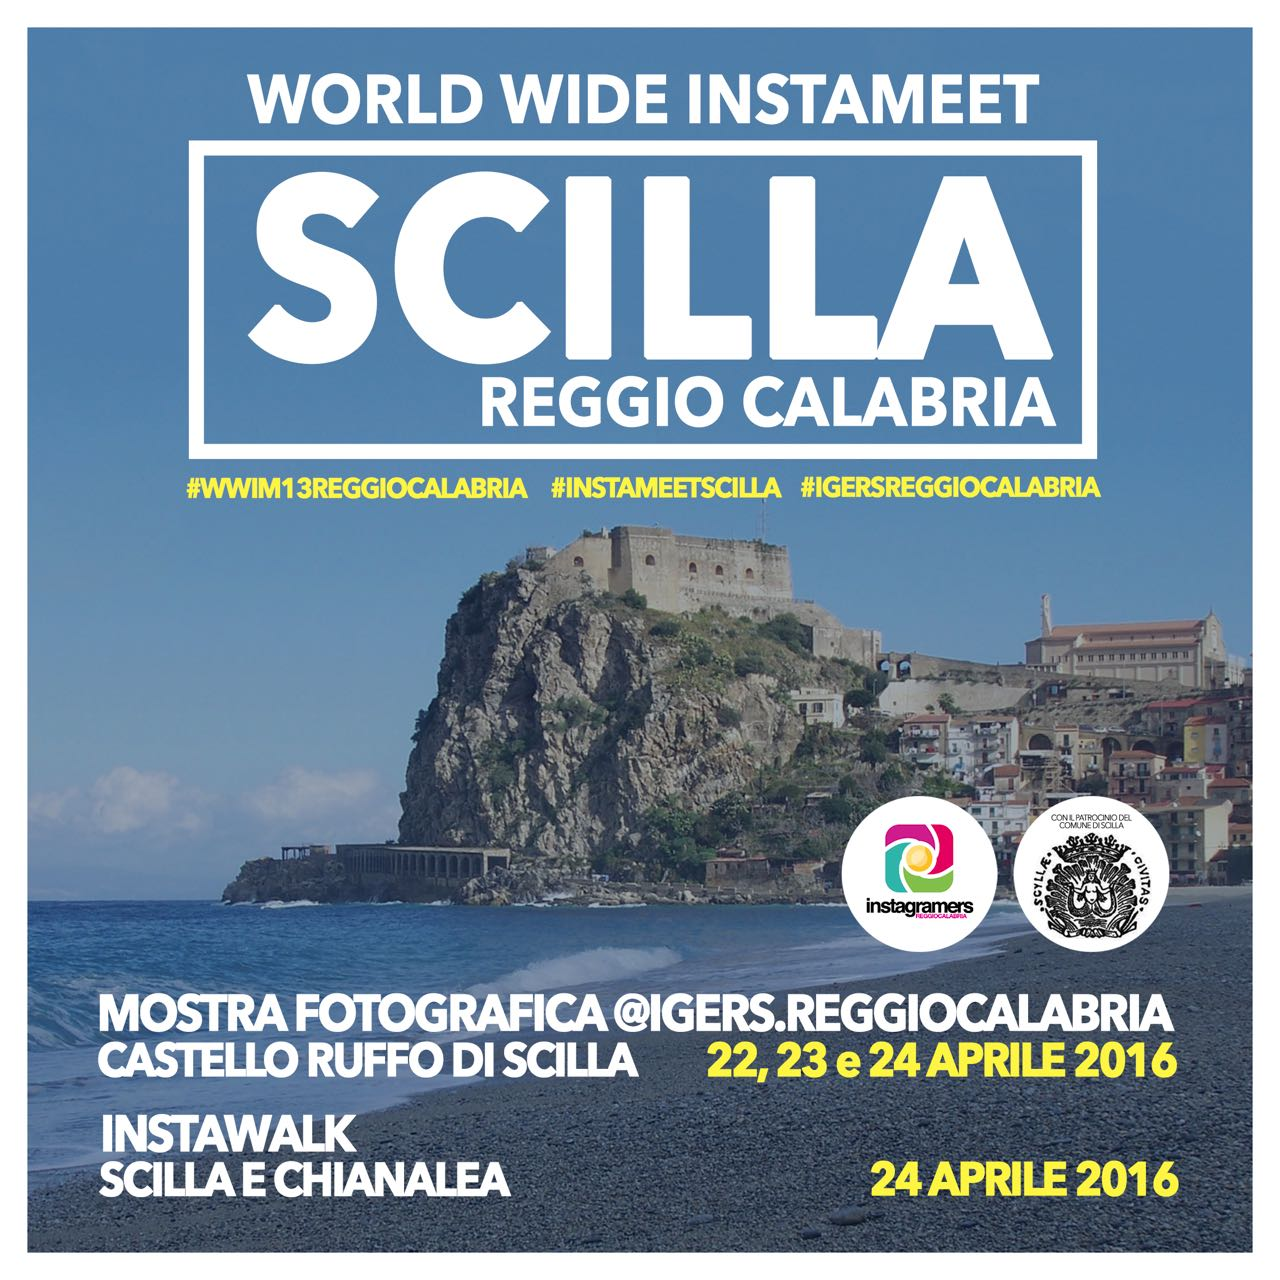 World Wide Instameet